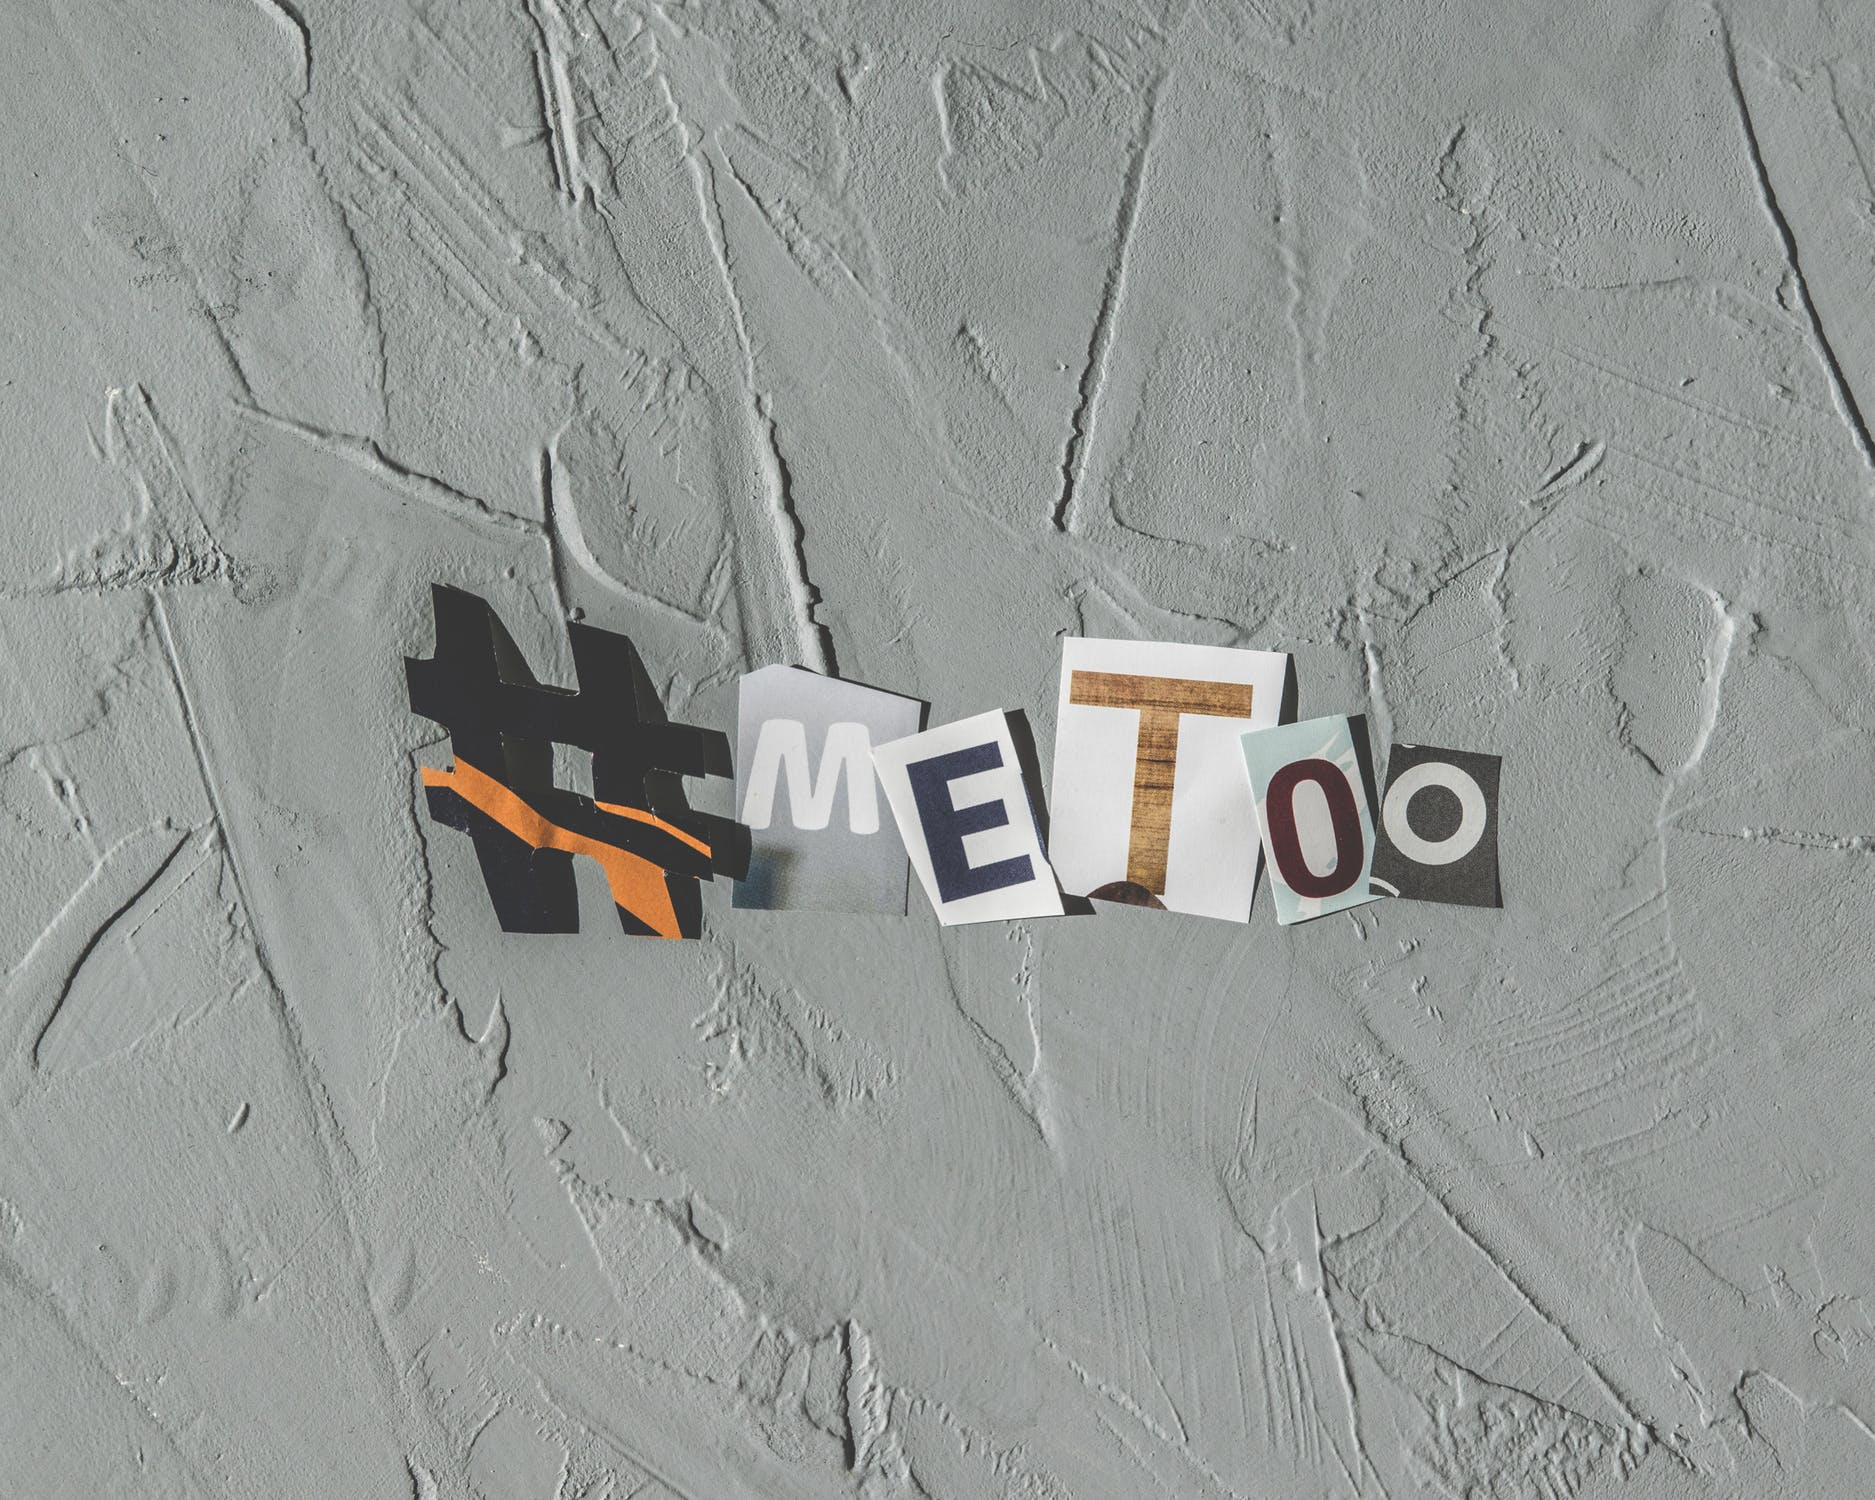 Anatomy of a Movement: the power behind the #MeToo collective experience